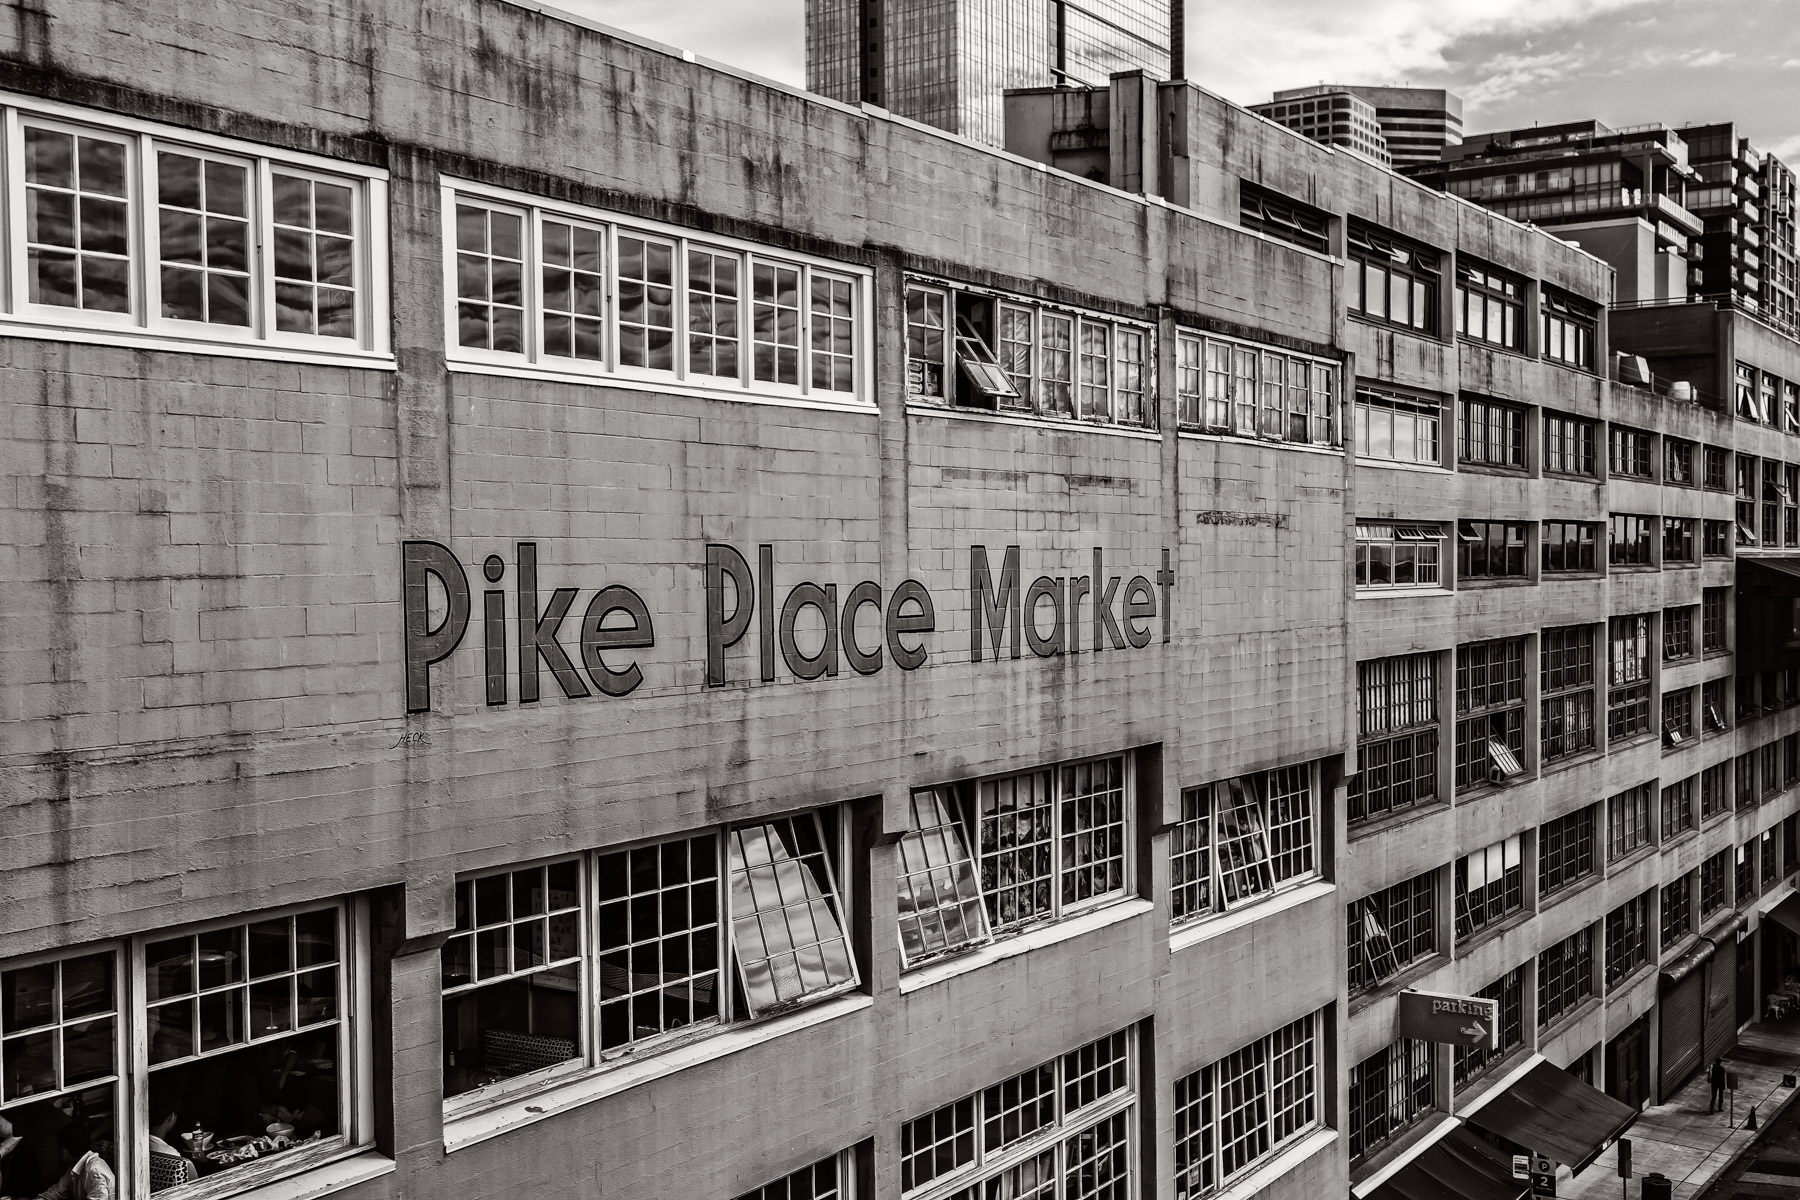 An exterior view of Seattle's landmark Pike Place Market.